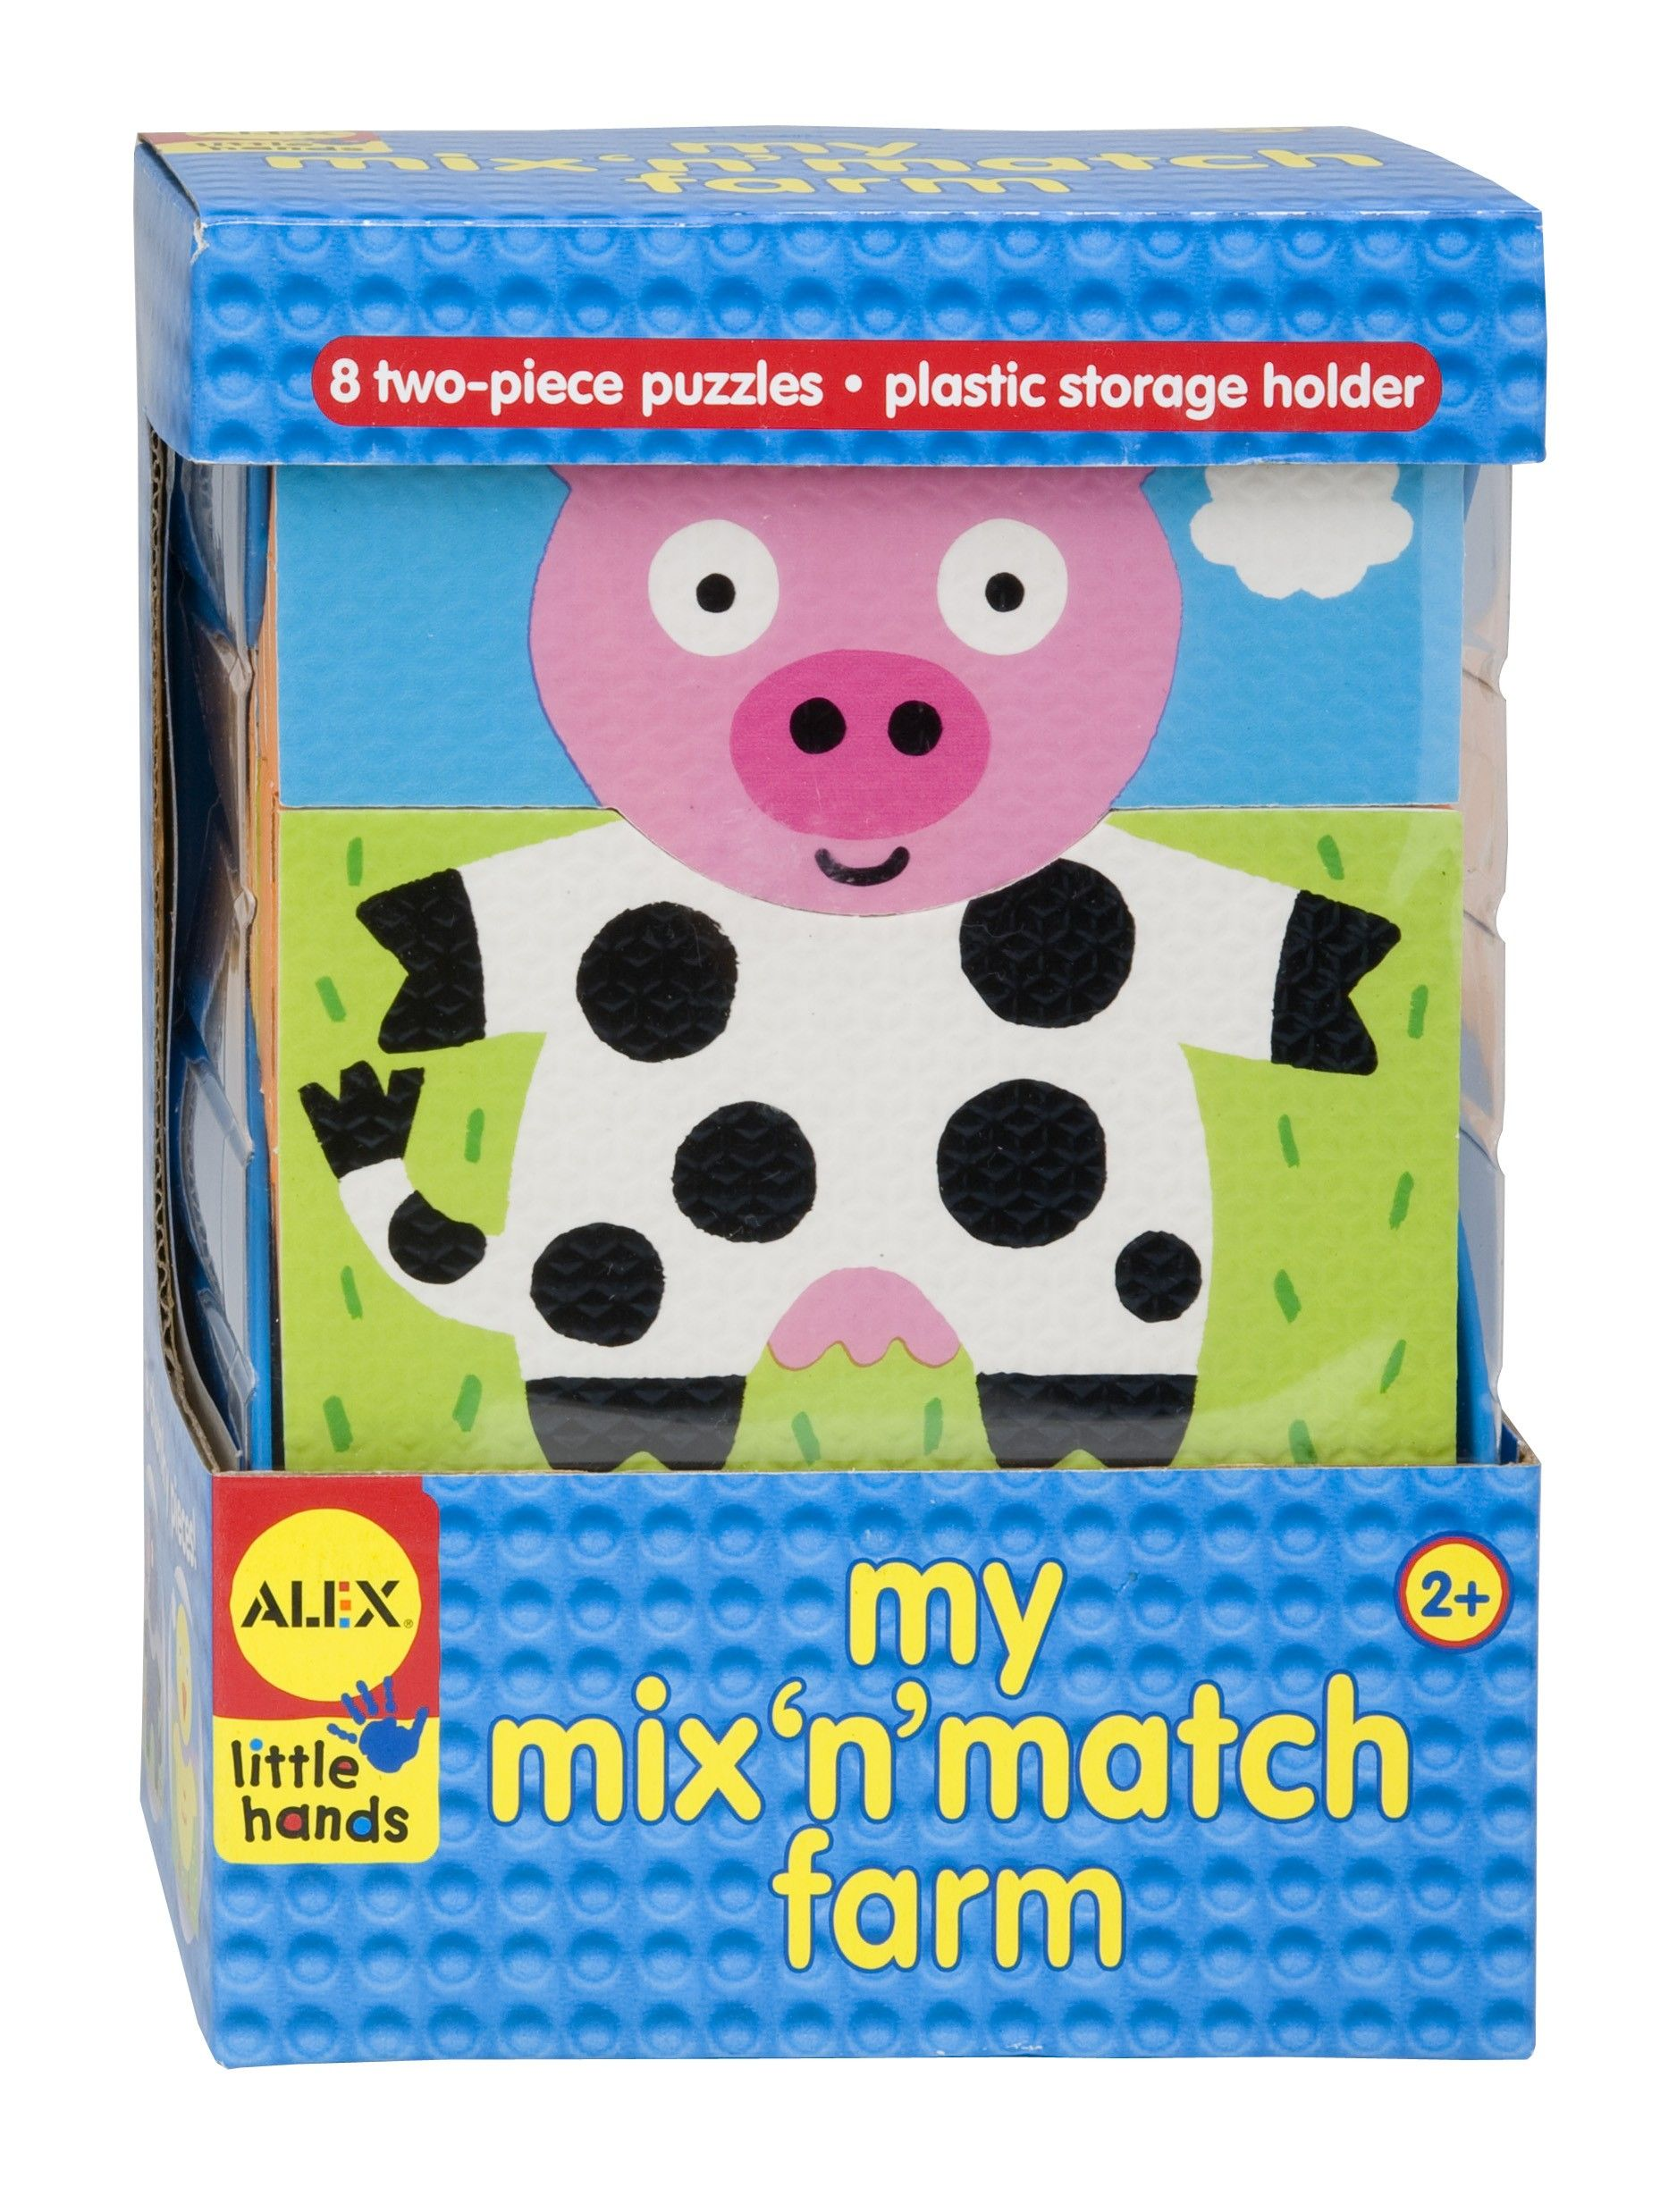 They are very cute and adorable farm animals shapes which has two separate parts and allows your child to match them to form a complete shape of one single animal. The Alex Toys Little Hands My Mix N Match Farm is very good to exercise your baby's wit and presence of mind. By being able to solve this puzzles your baby will learn about logical matching of things around him. She/ he will also have a lot of fun through this process.